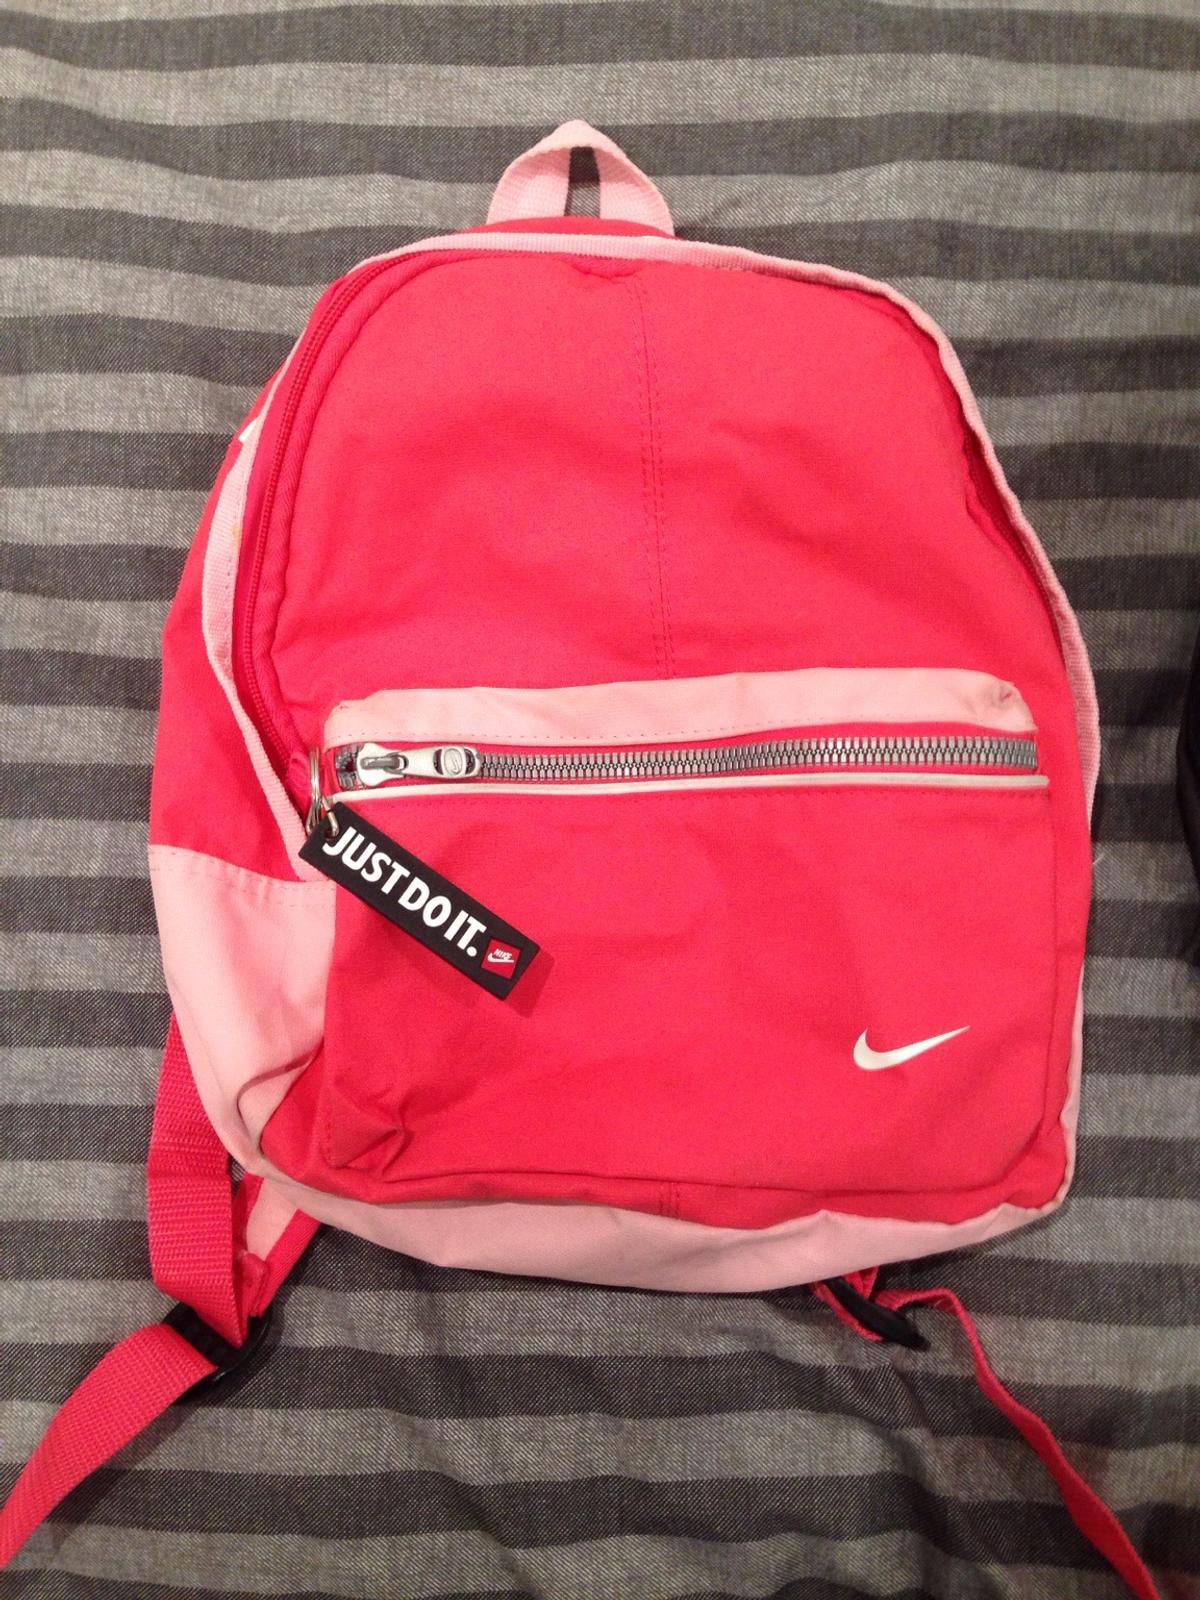 266694e94c Nike Just do it bags in N1 London for £12.00 for sale - Shpock